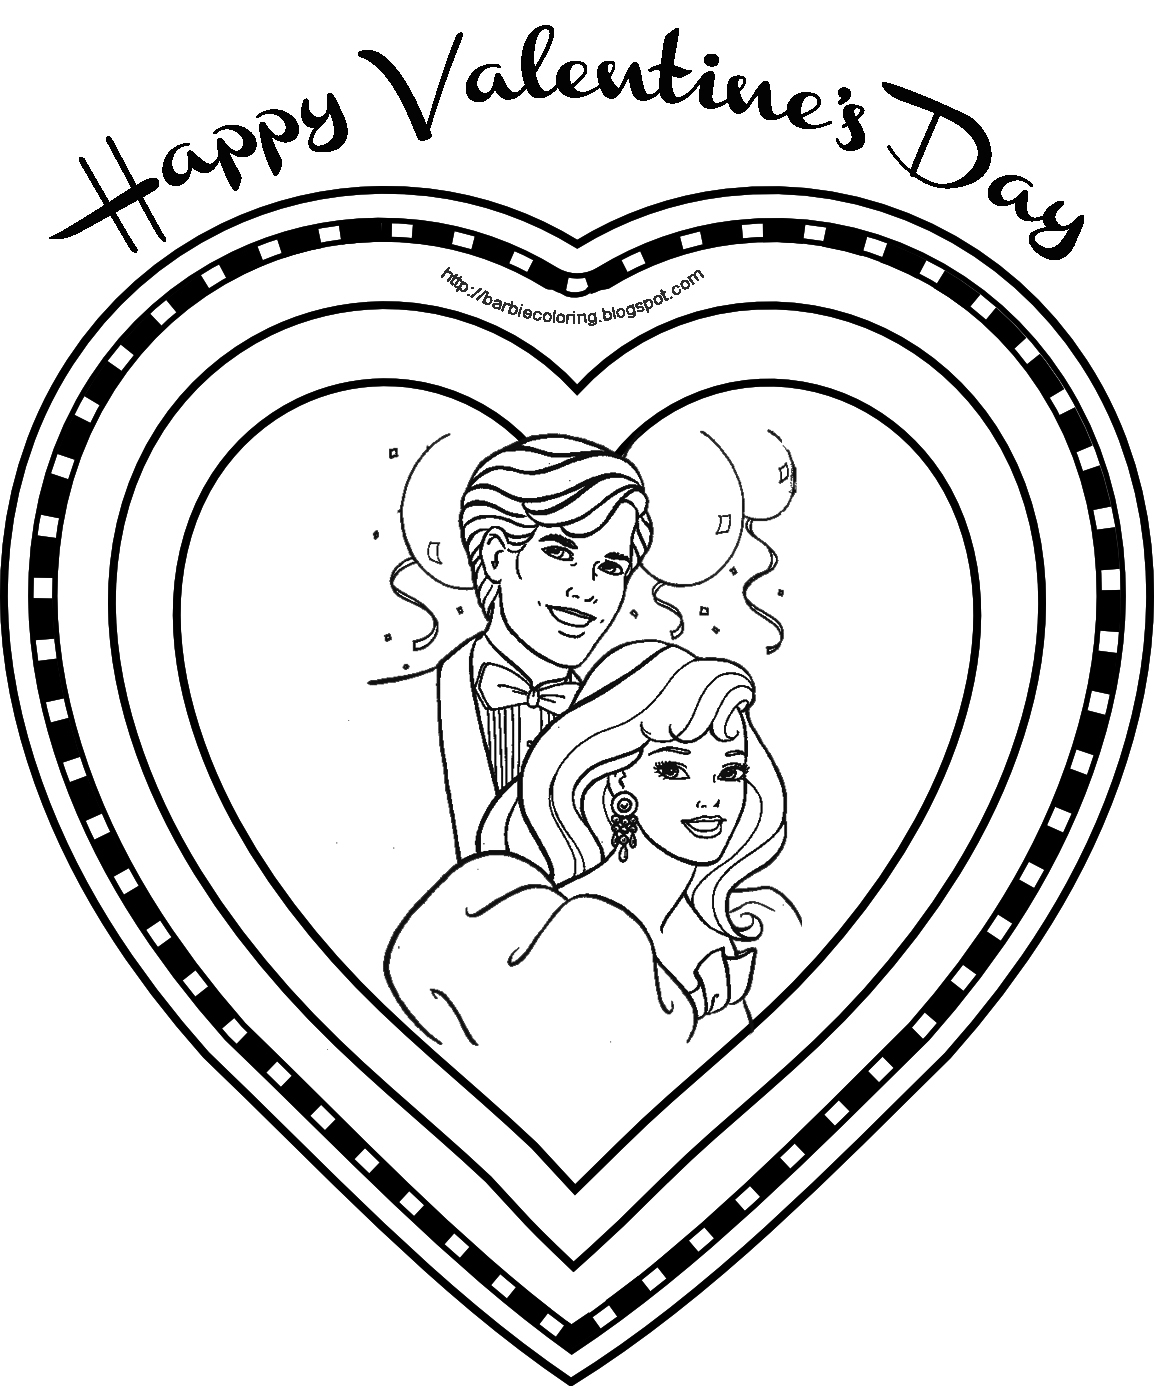 BARBIE AND KEN VALENTINE S DAY COLORING BOOK PAGE